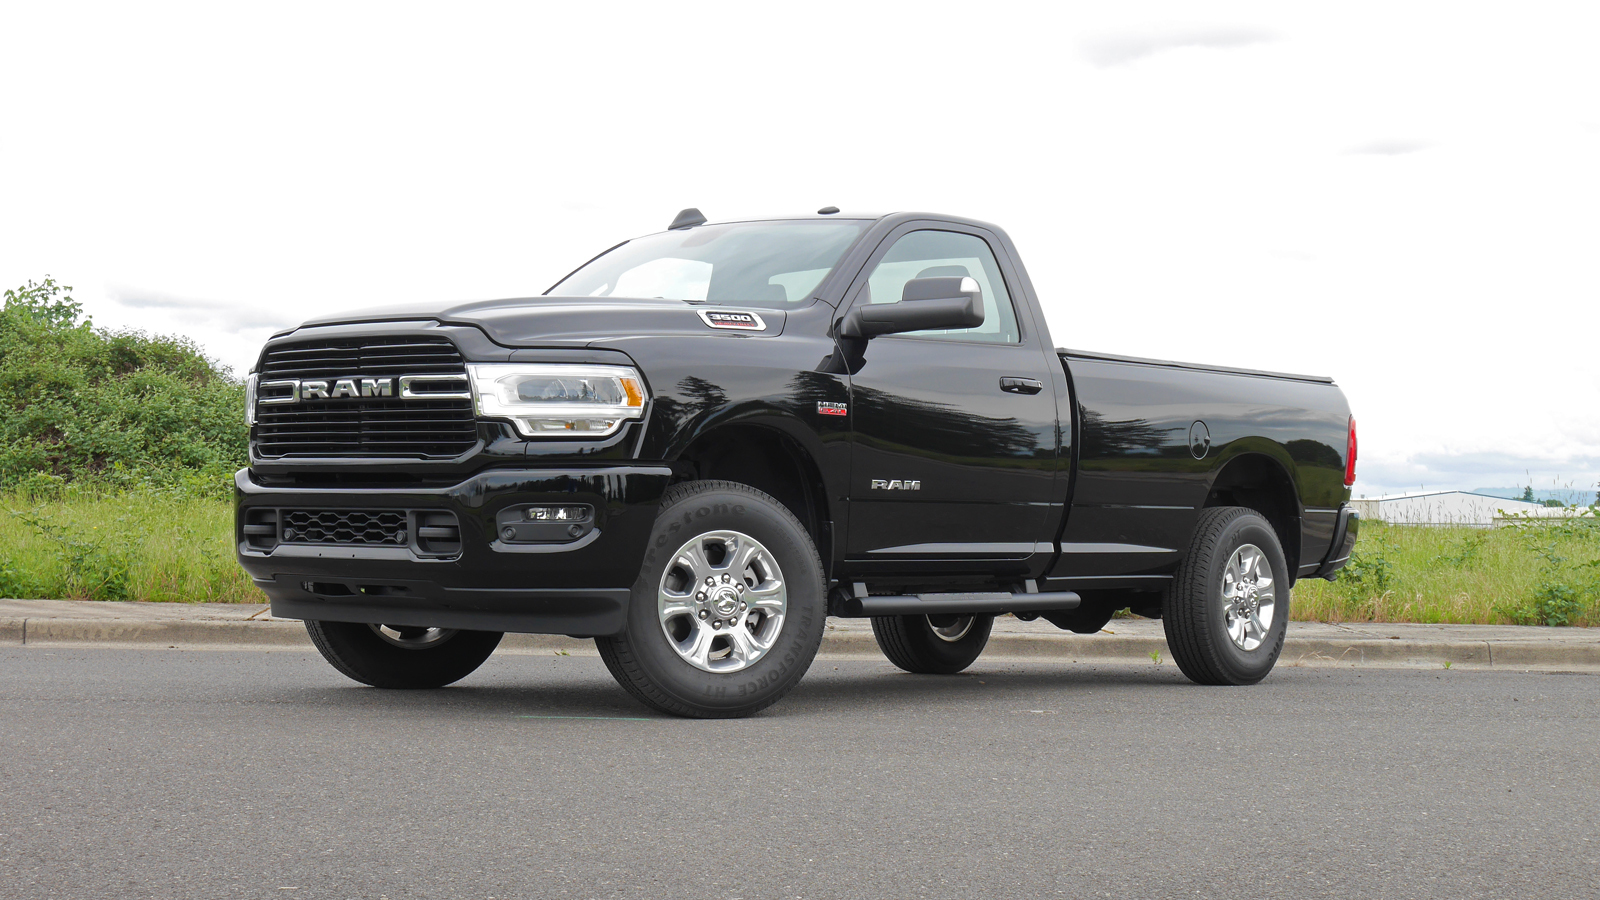 2019 Ram 3500 HD Regular Cab Big Horn Review | Payload ...